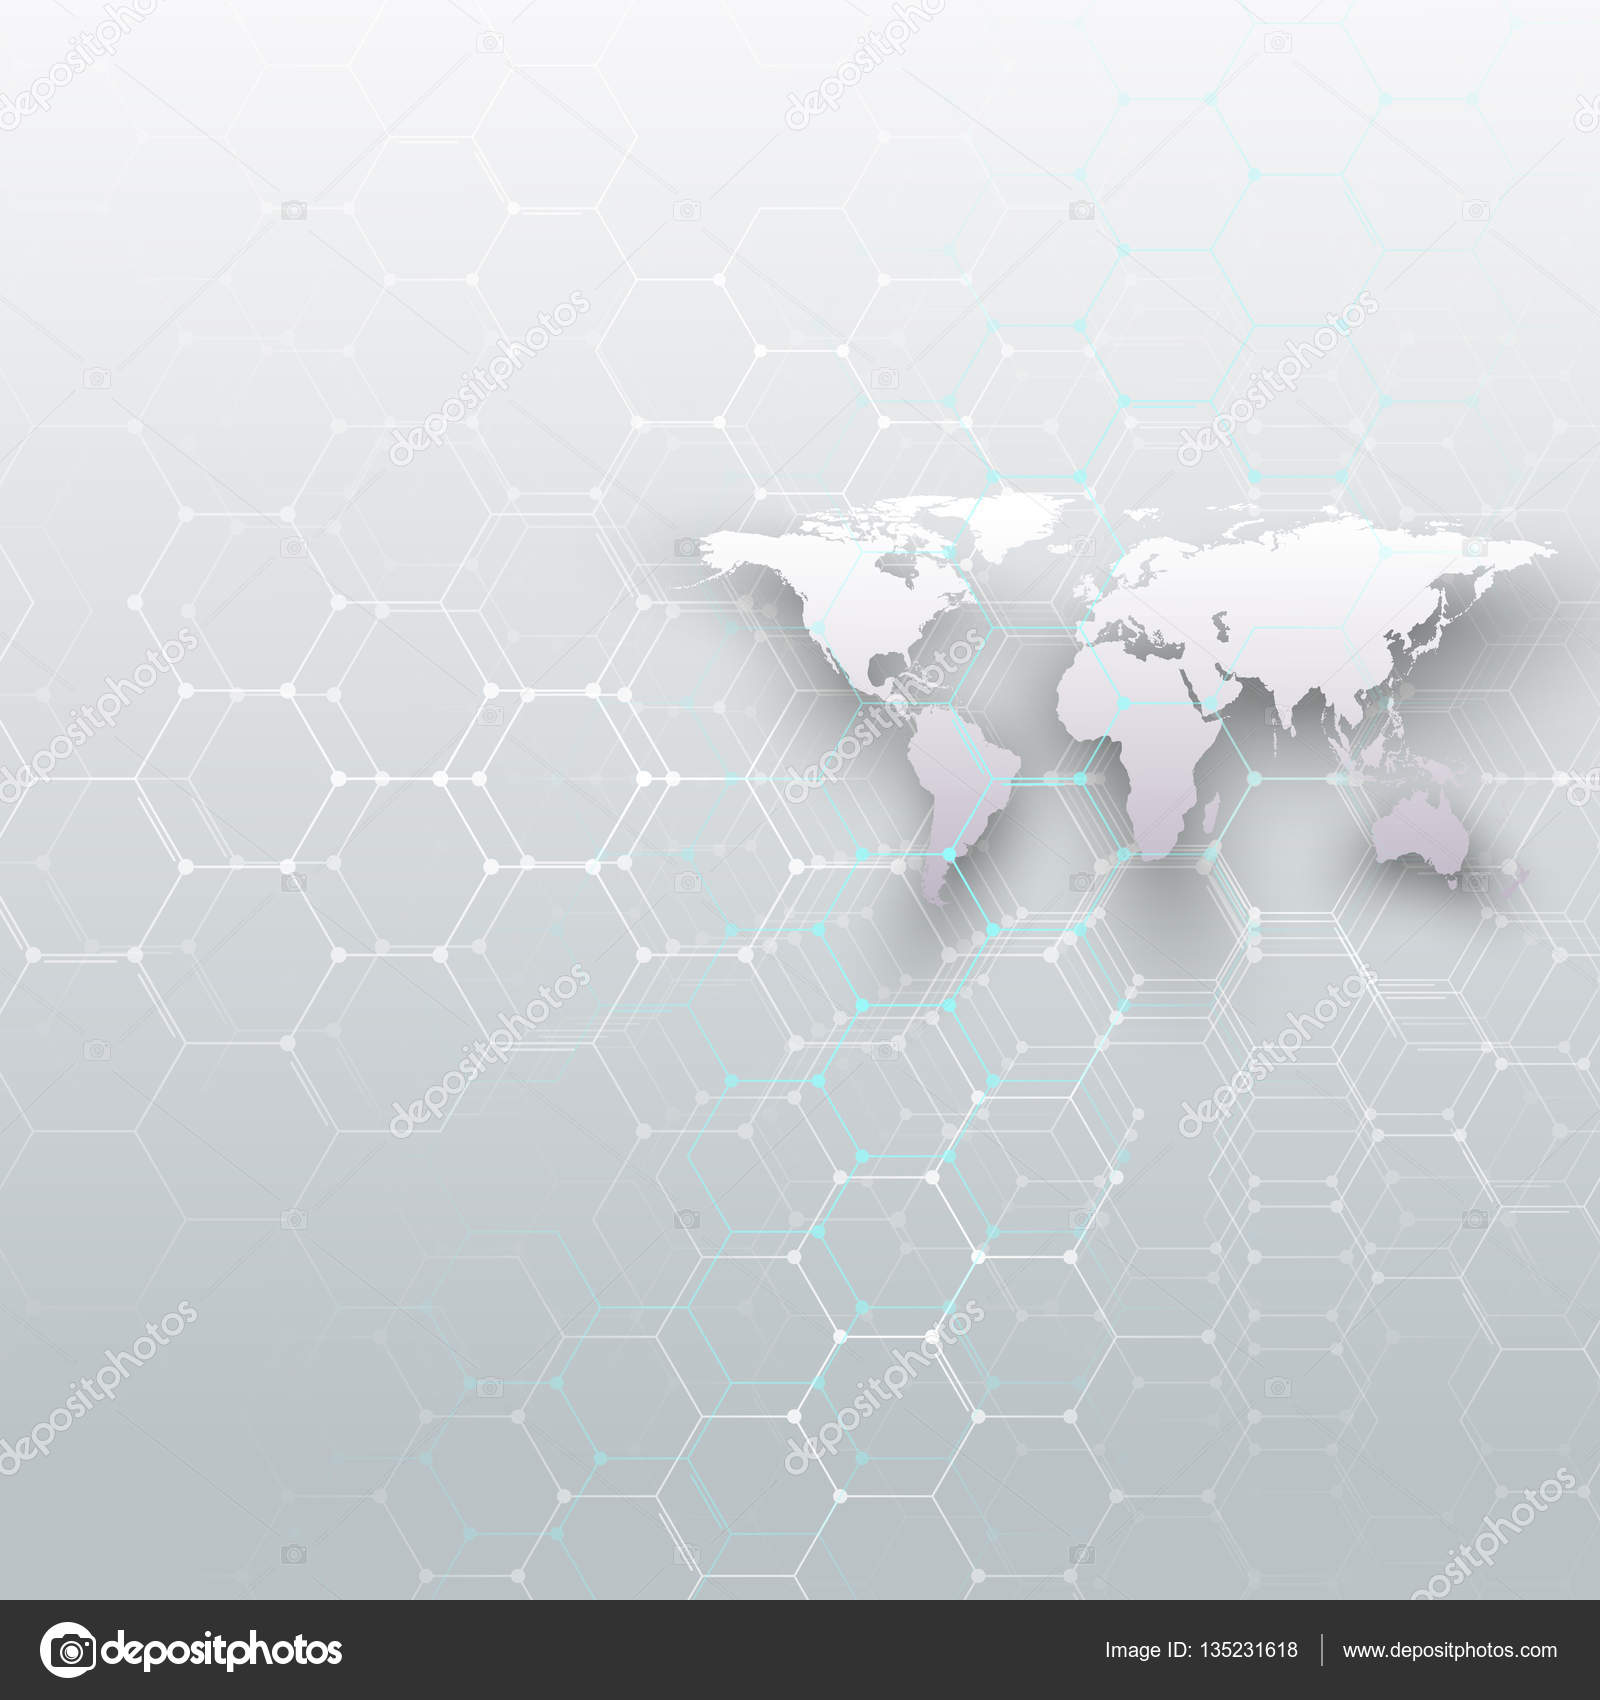 White world map connecting lines and dots on gray color background white world map connecting lines and dots on gray color background chemistry pattern gumiabroncs Choice Image